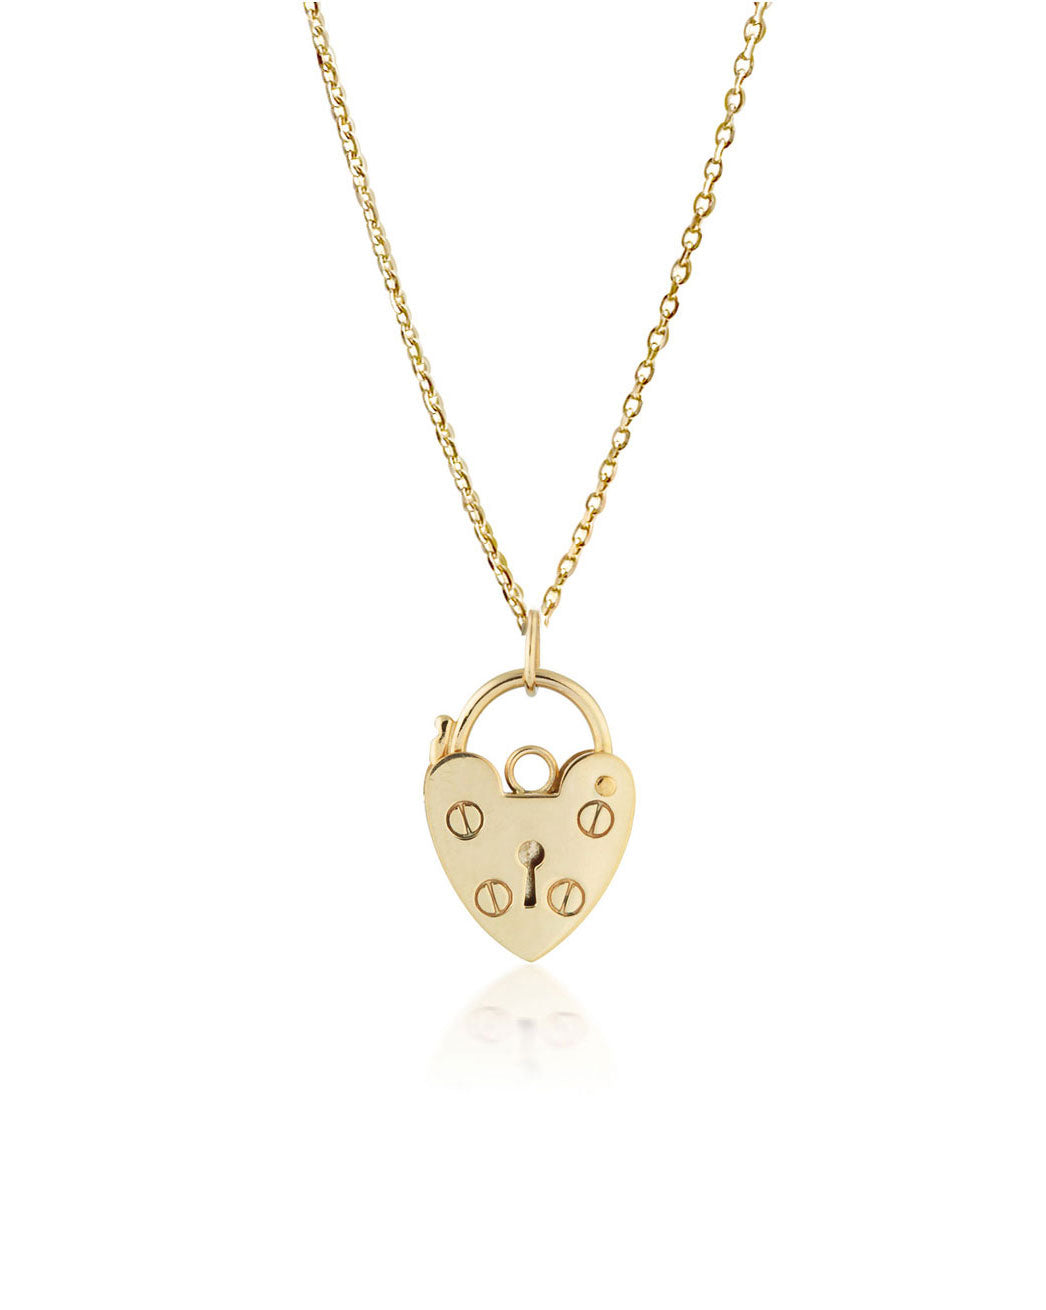 Mini Heart Lock Necklace | 9k Gold